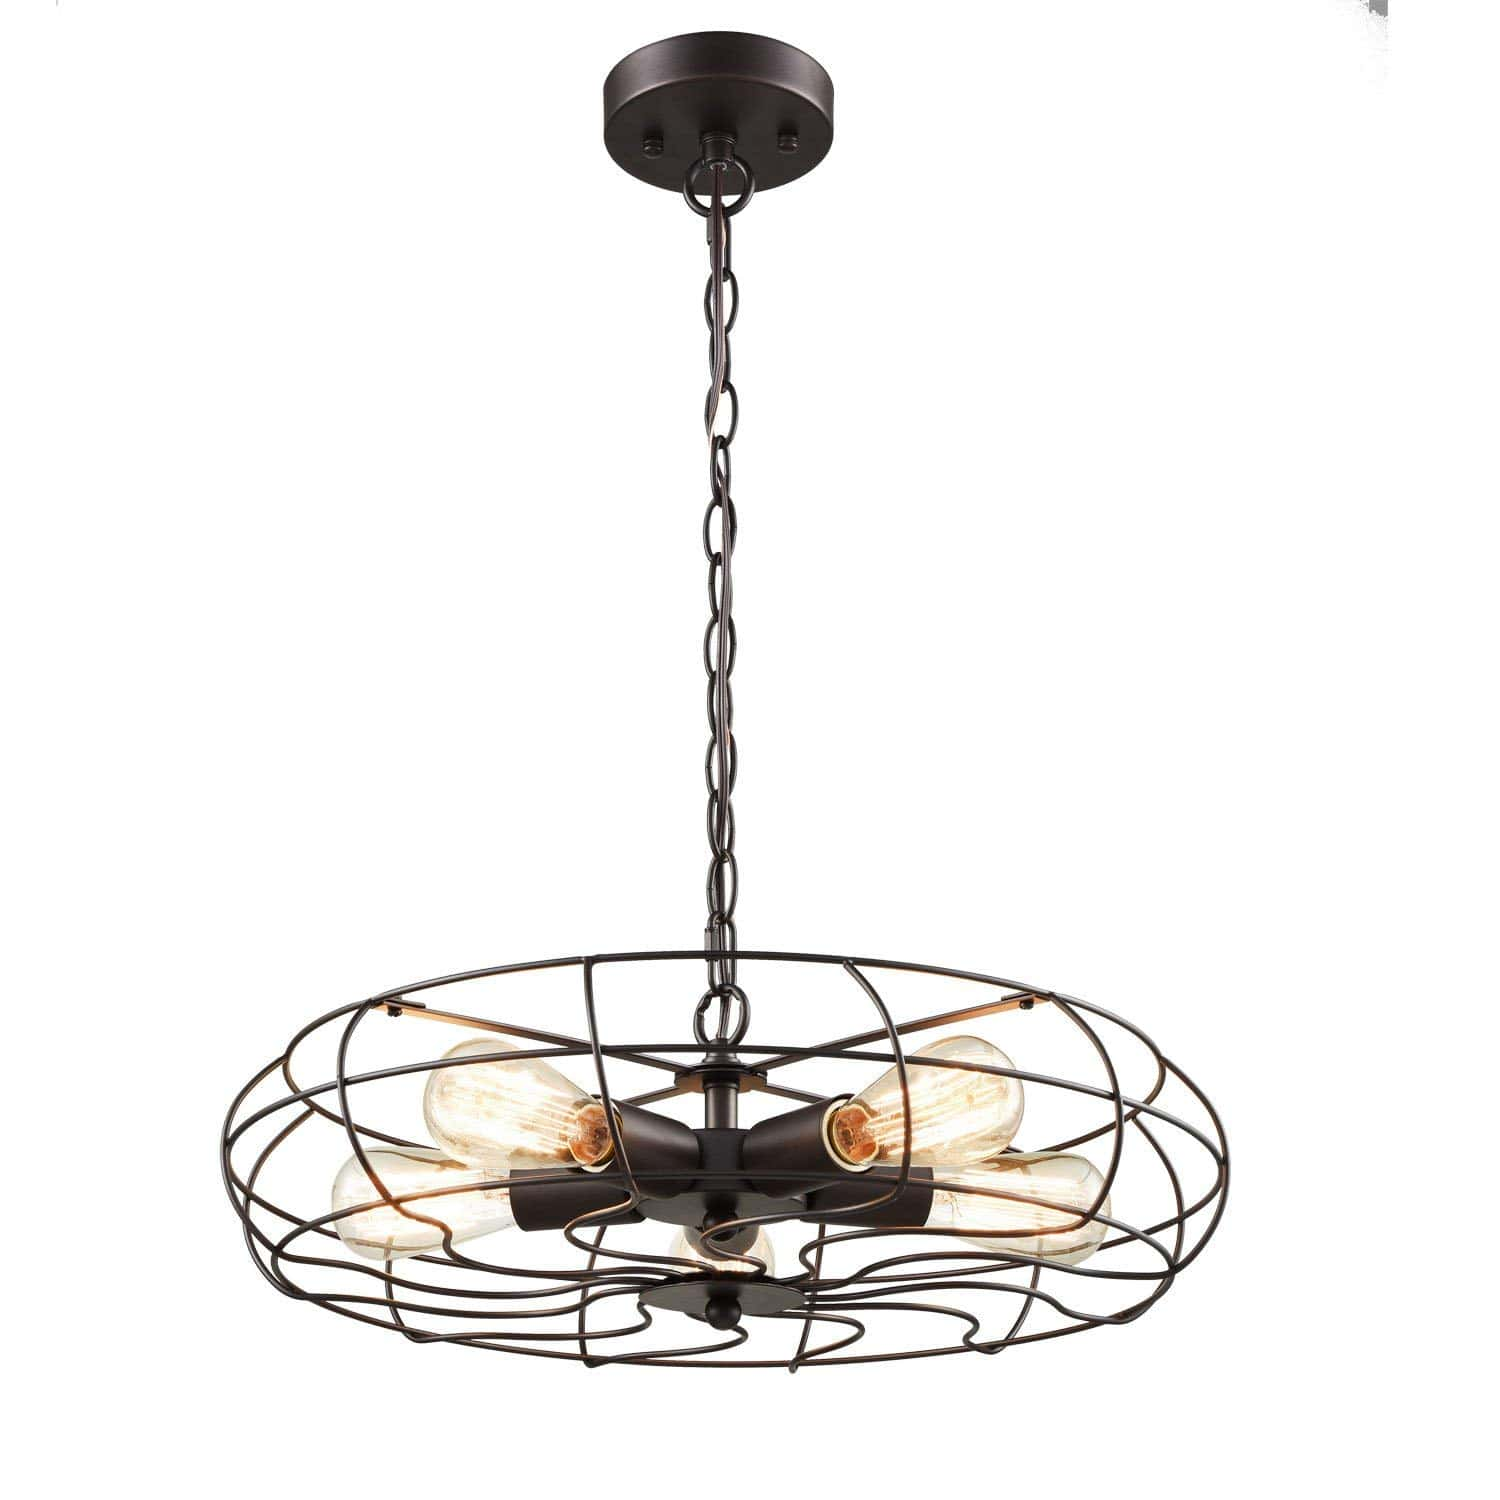 Industrial Metal Cage Hanging Pendant Chandelier with Chain, 5 Lights